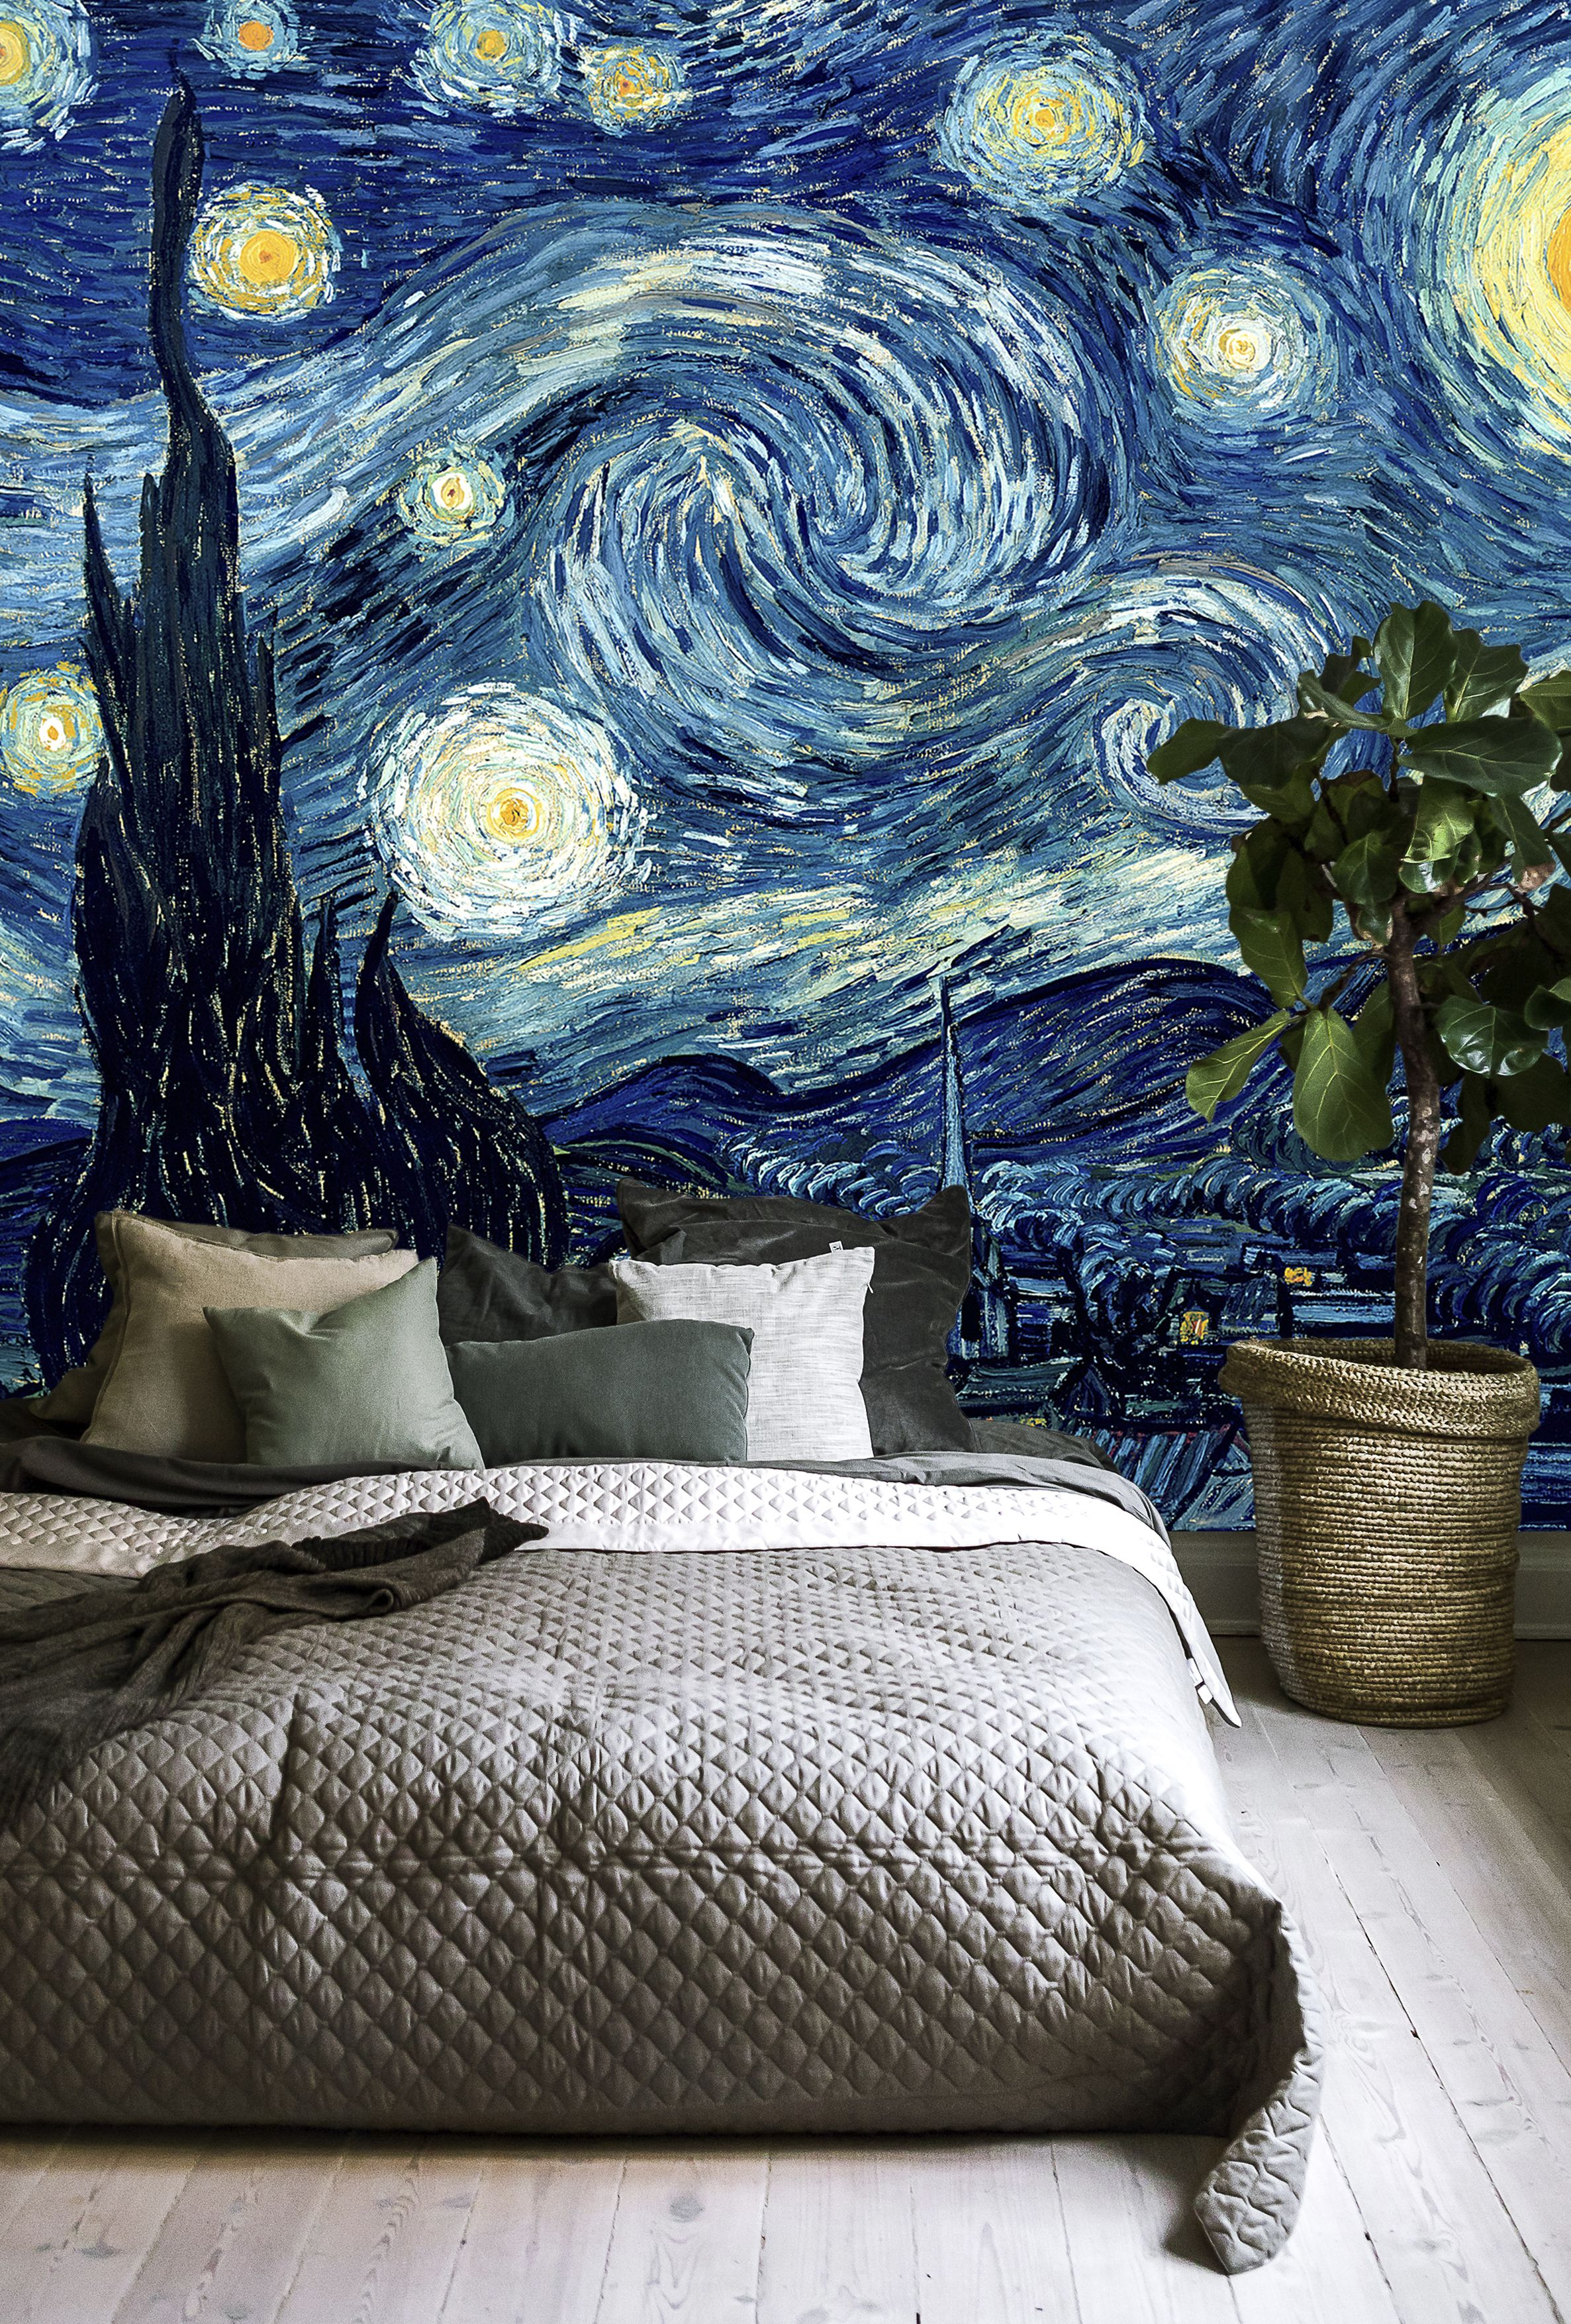 Vincent Van Gogh Starry Night A Wall Mural For Every Room Starry Night Bedroom Starry Night Van Gogh Starry Night Wallpaper